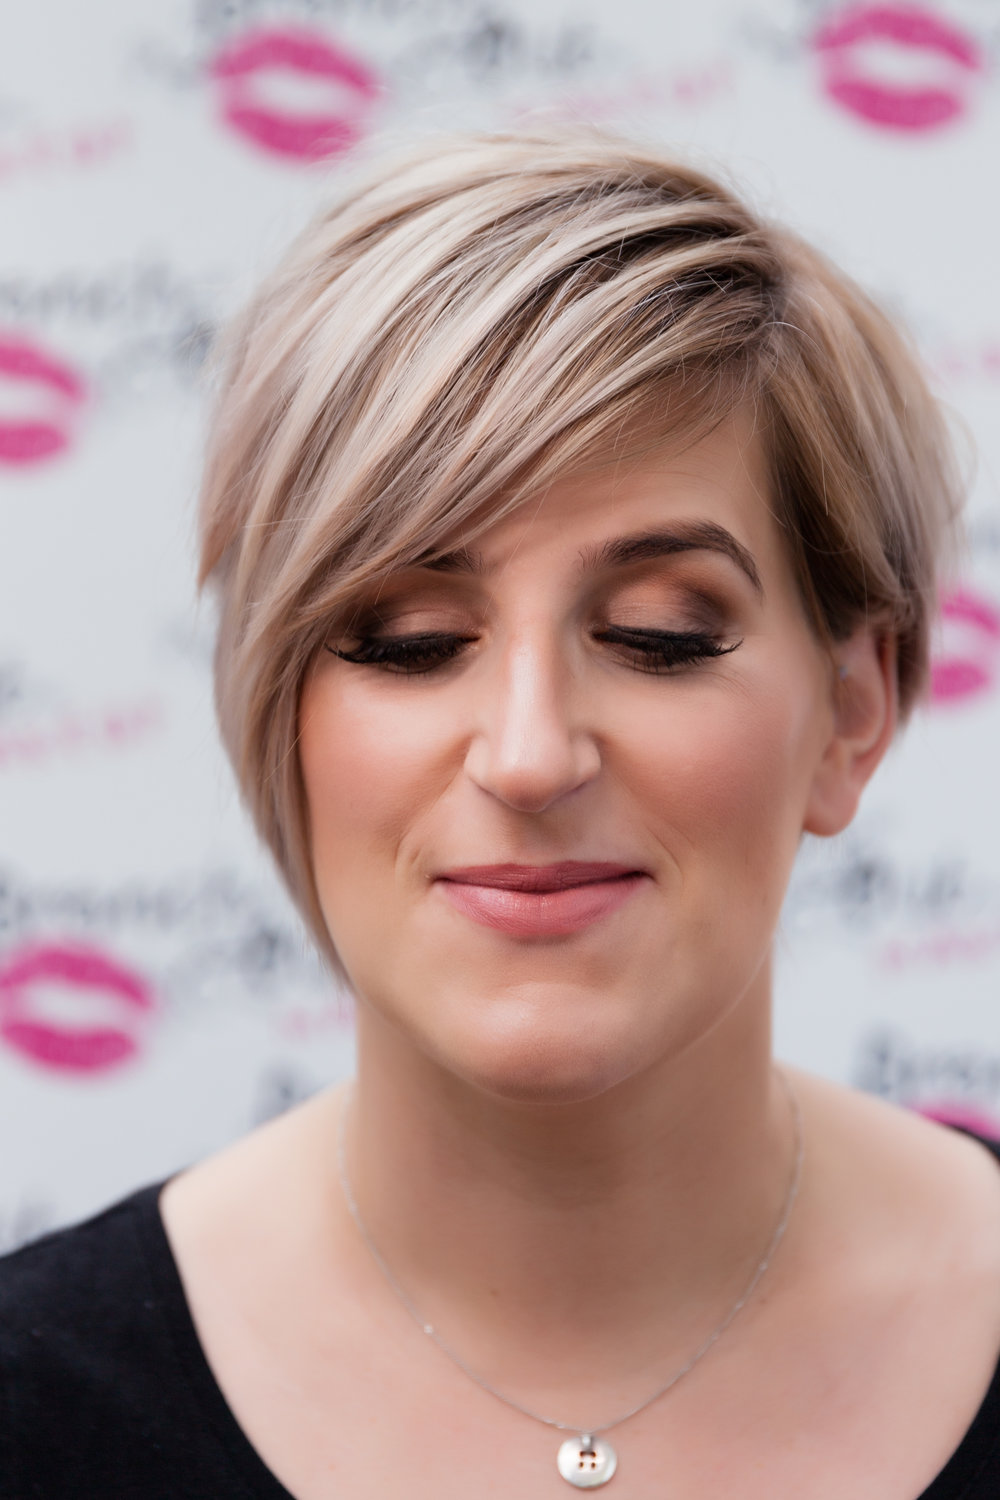 SPECIAL OCCASION MAKEUP - Suitable for a variety of occasions including birthdays, anniversaries, black tie events, hen parties & proms)£35 per personOptional strip/false lashes (full or half) £5 per person